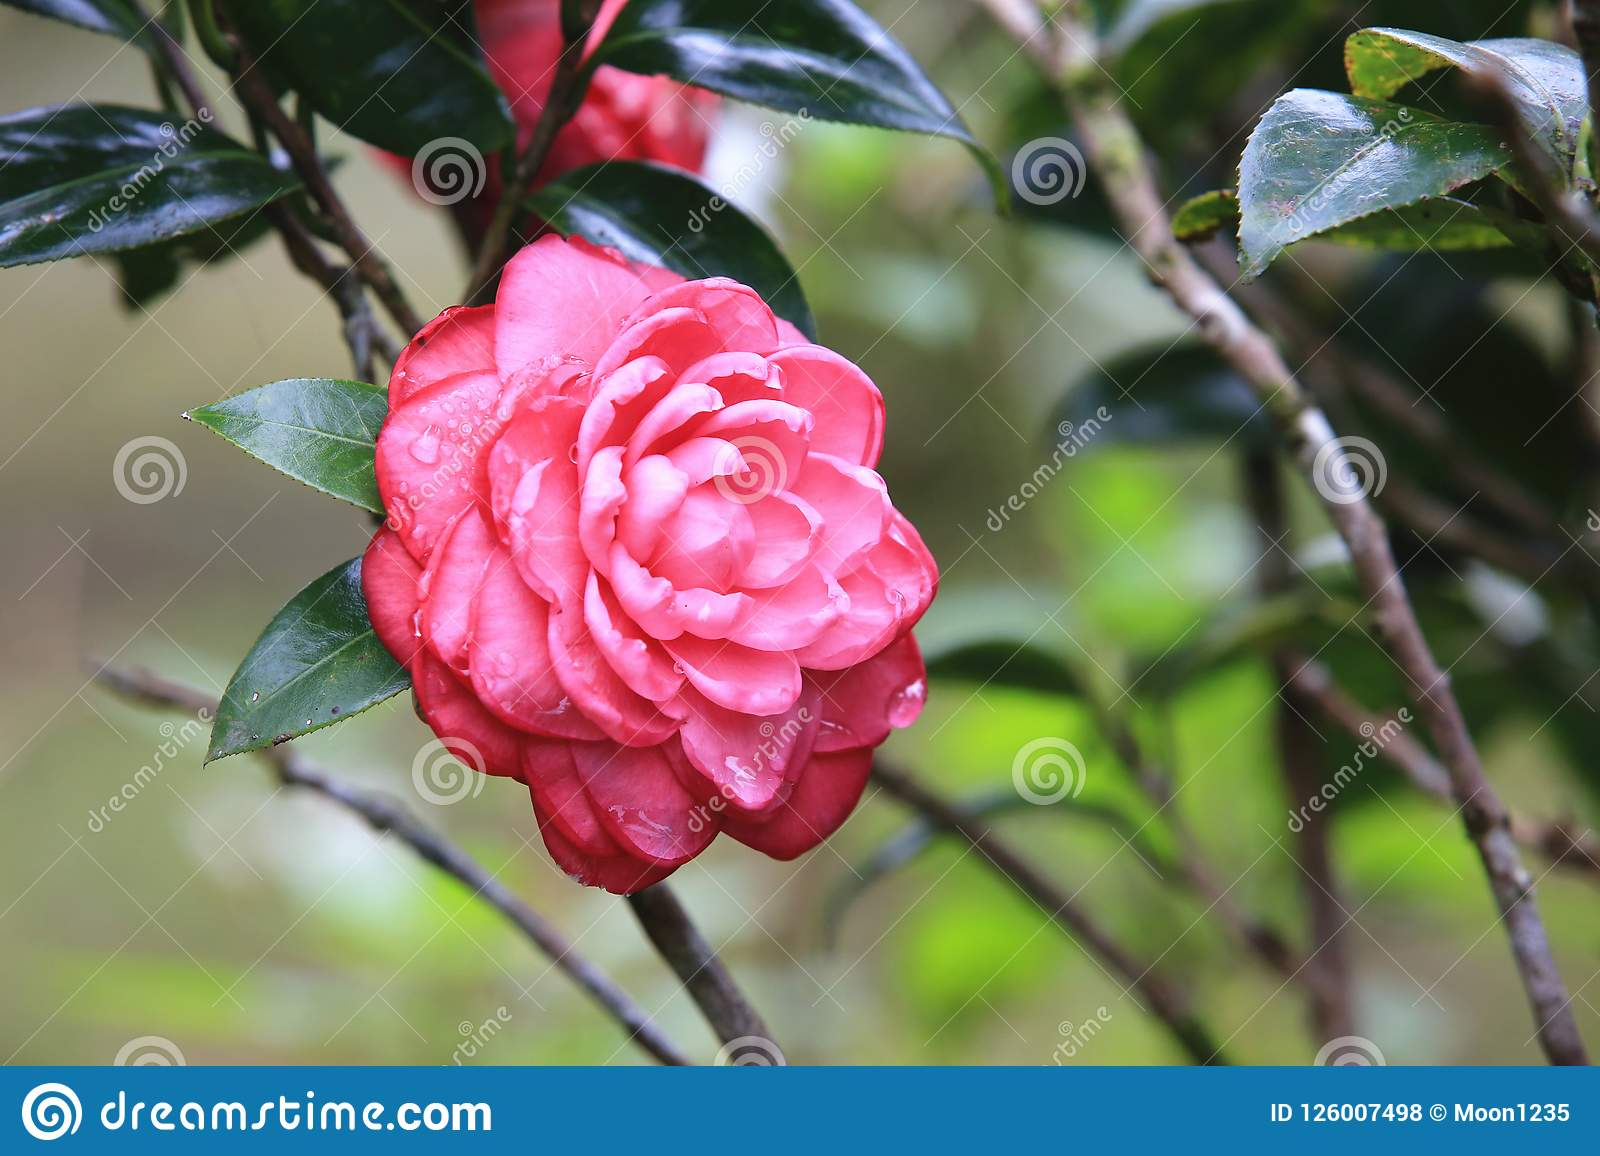 Red Flower Camellia Picturesque Flowering Picturesboss